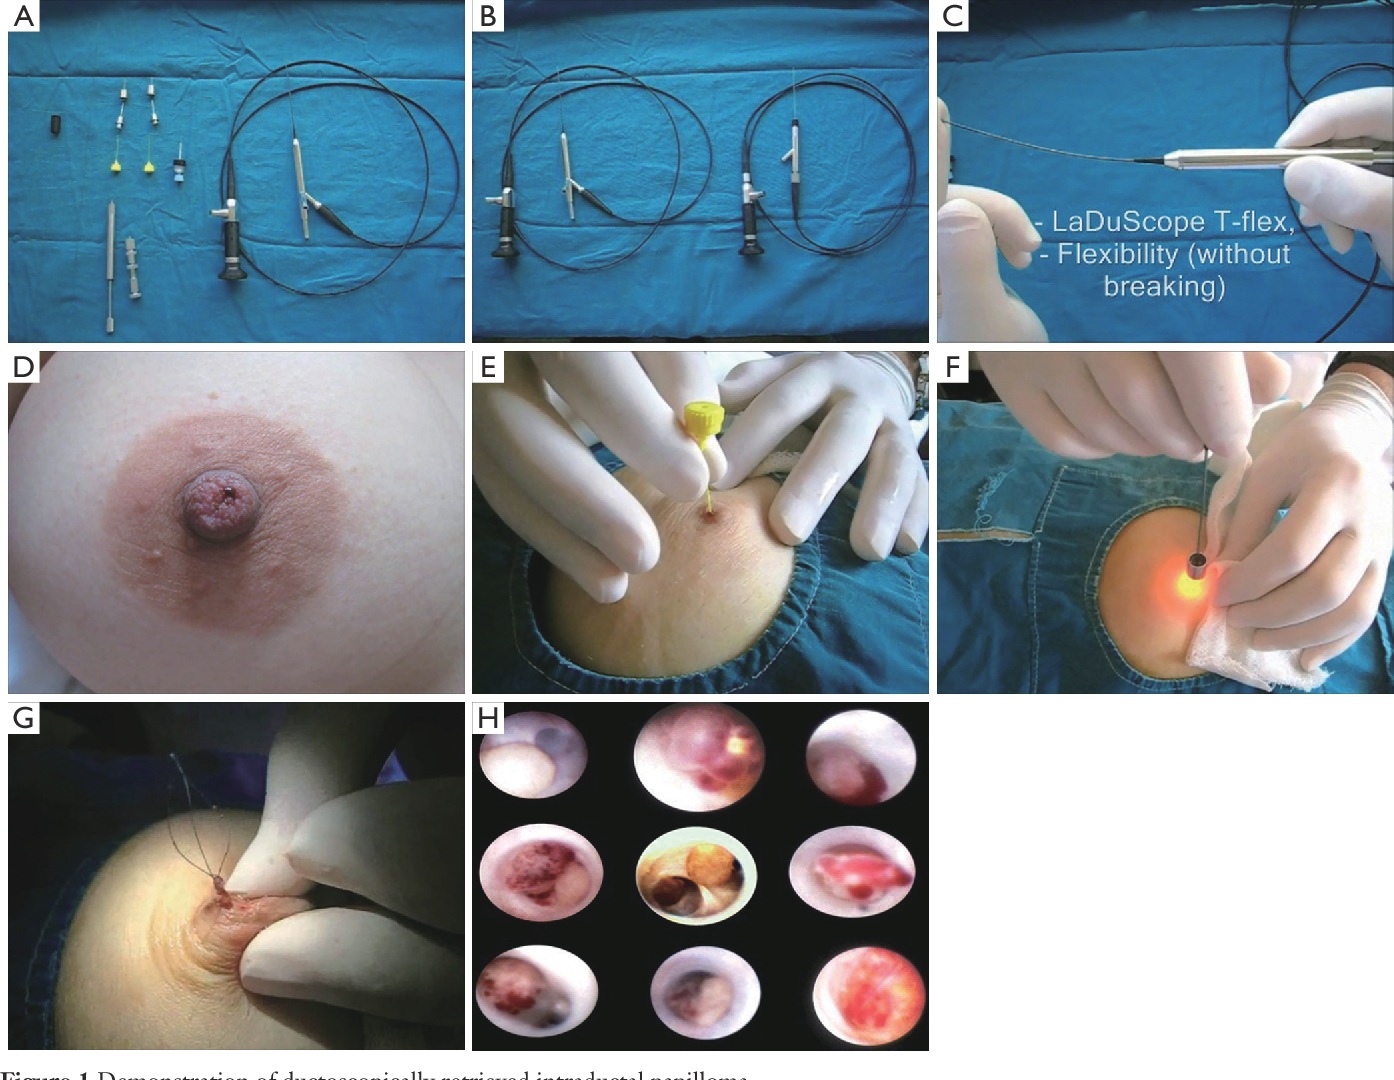 treatment for papilloma in breast